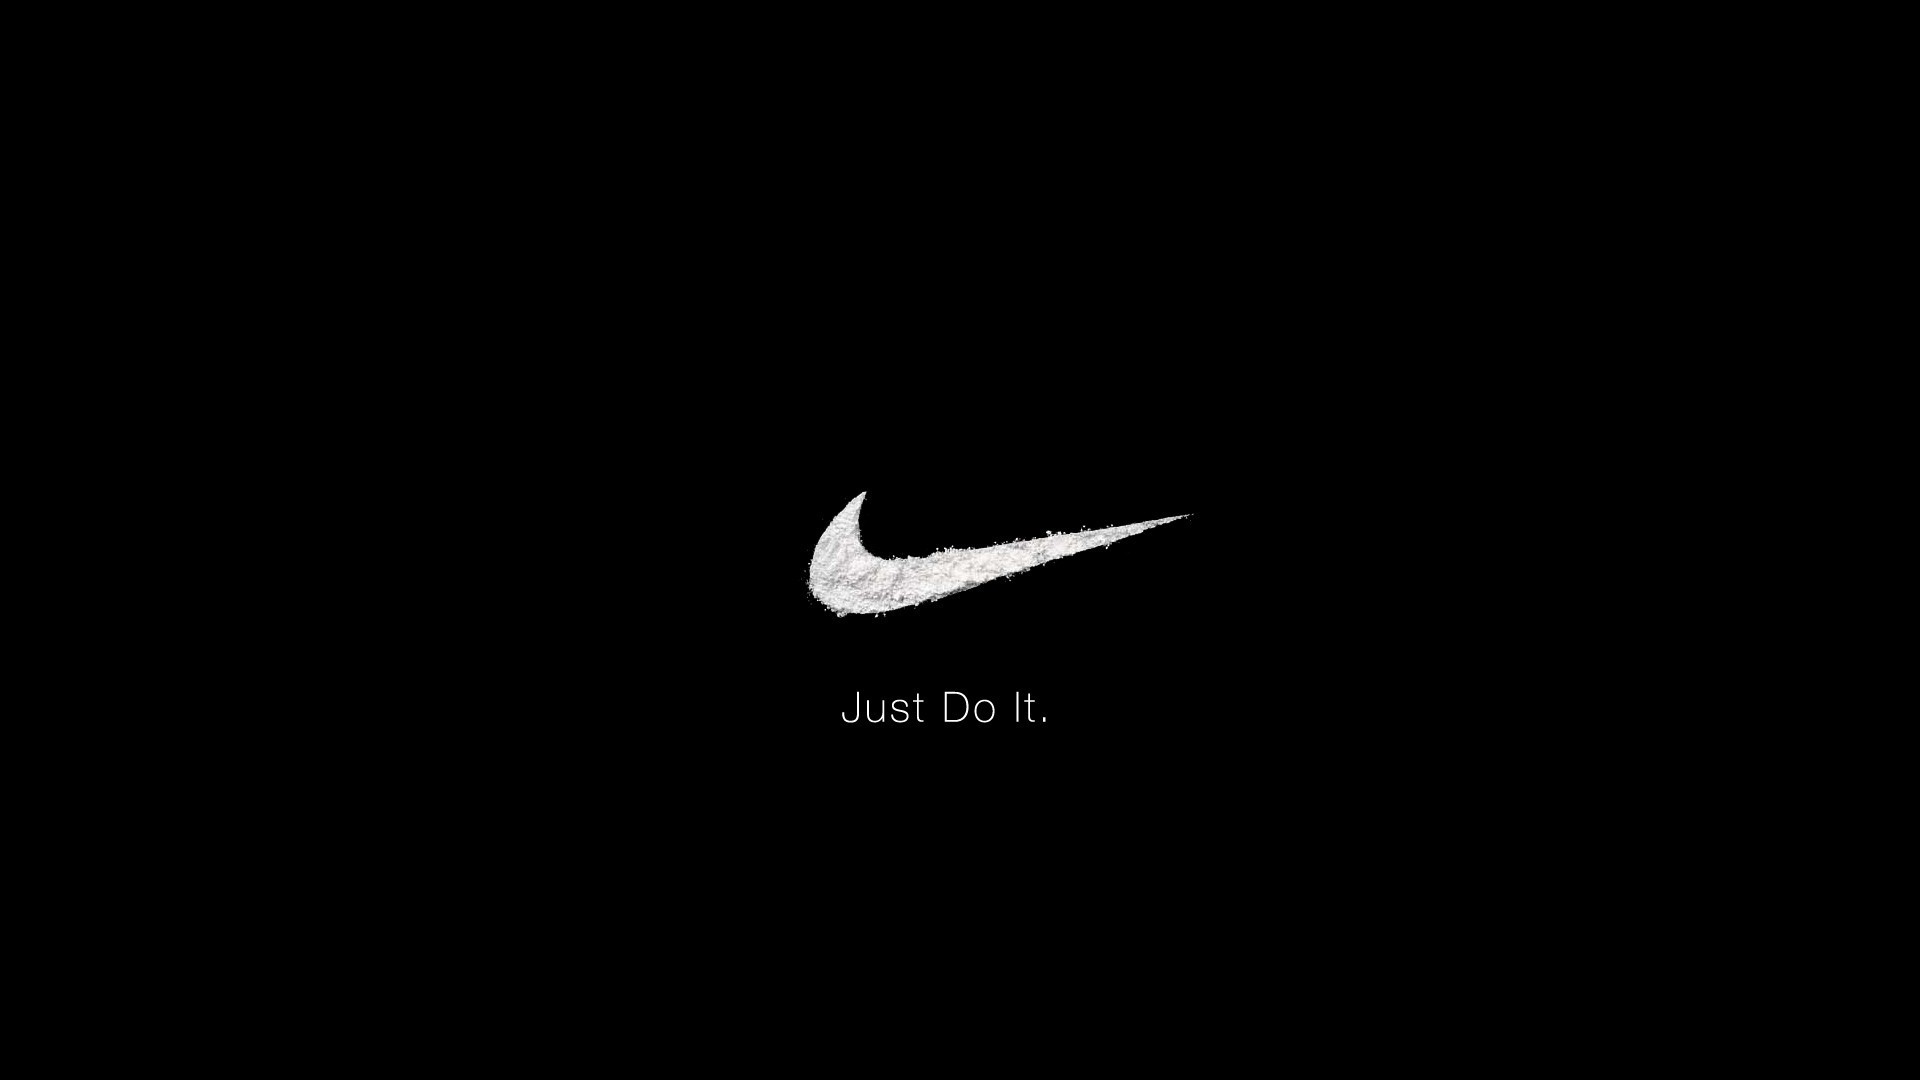 ... nike-just-do-it-hd-wallpapers ...